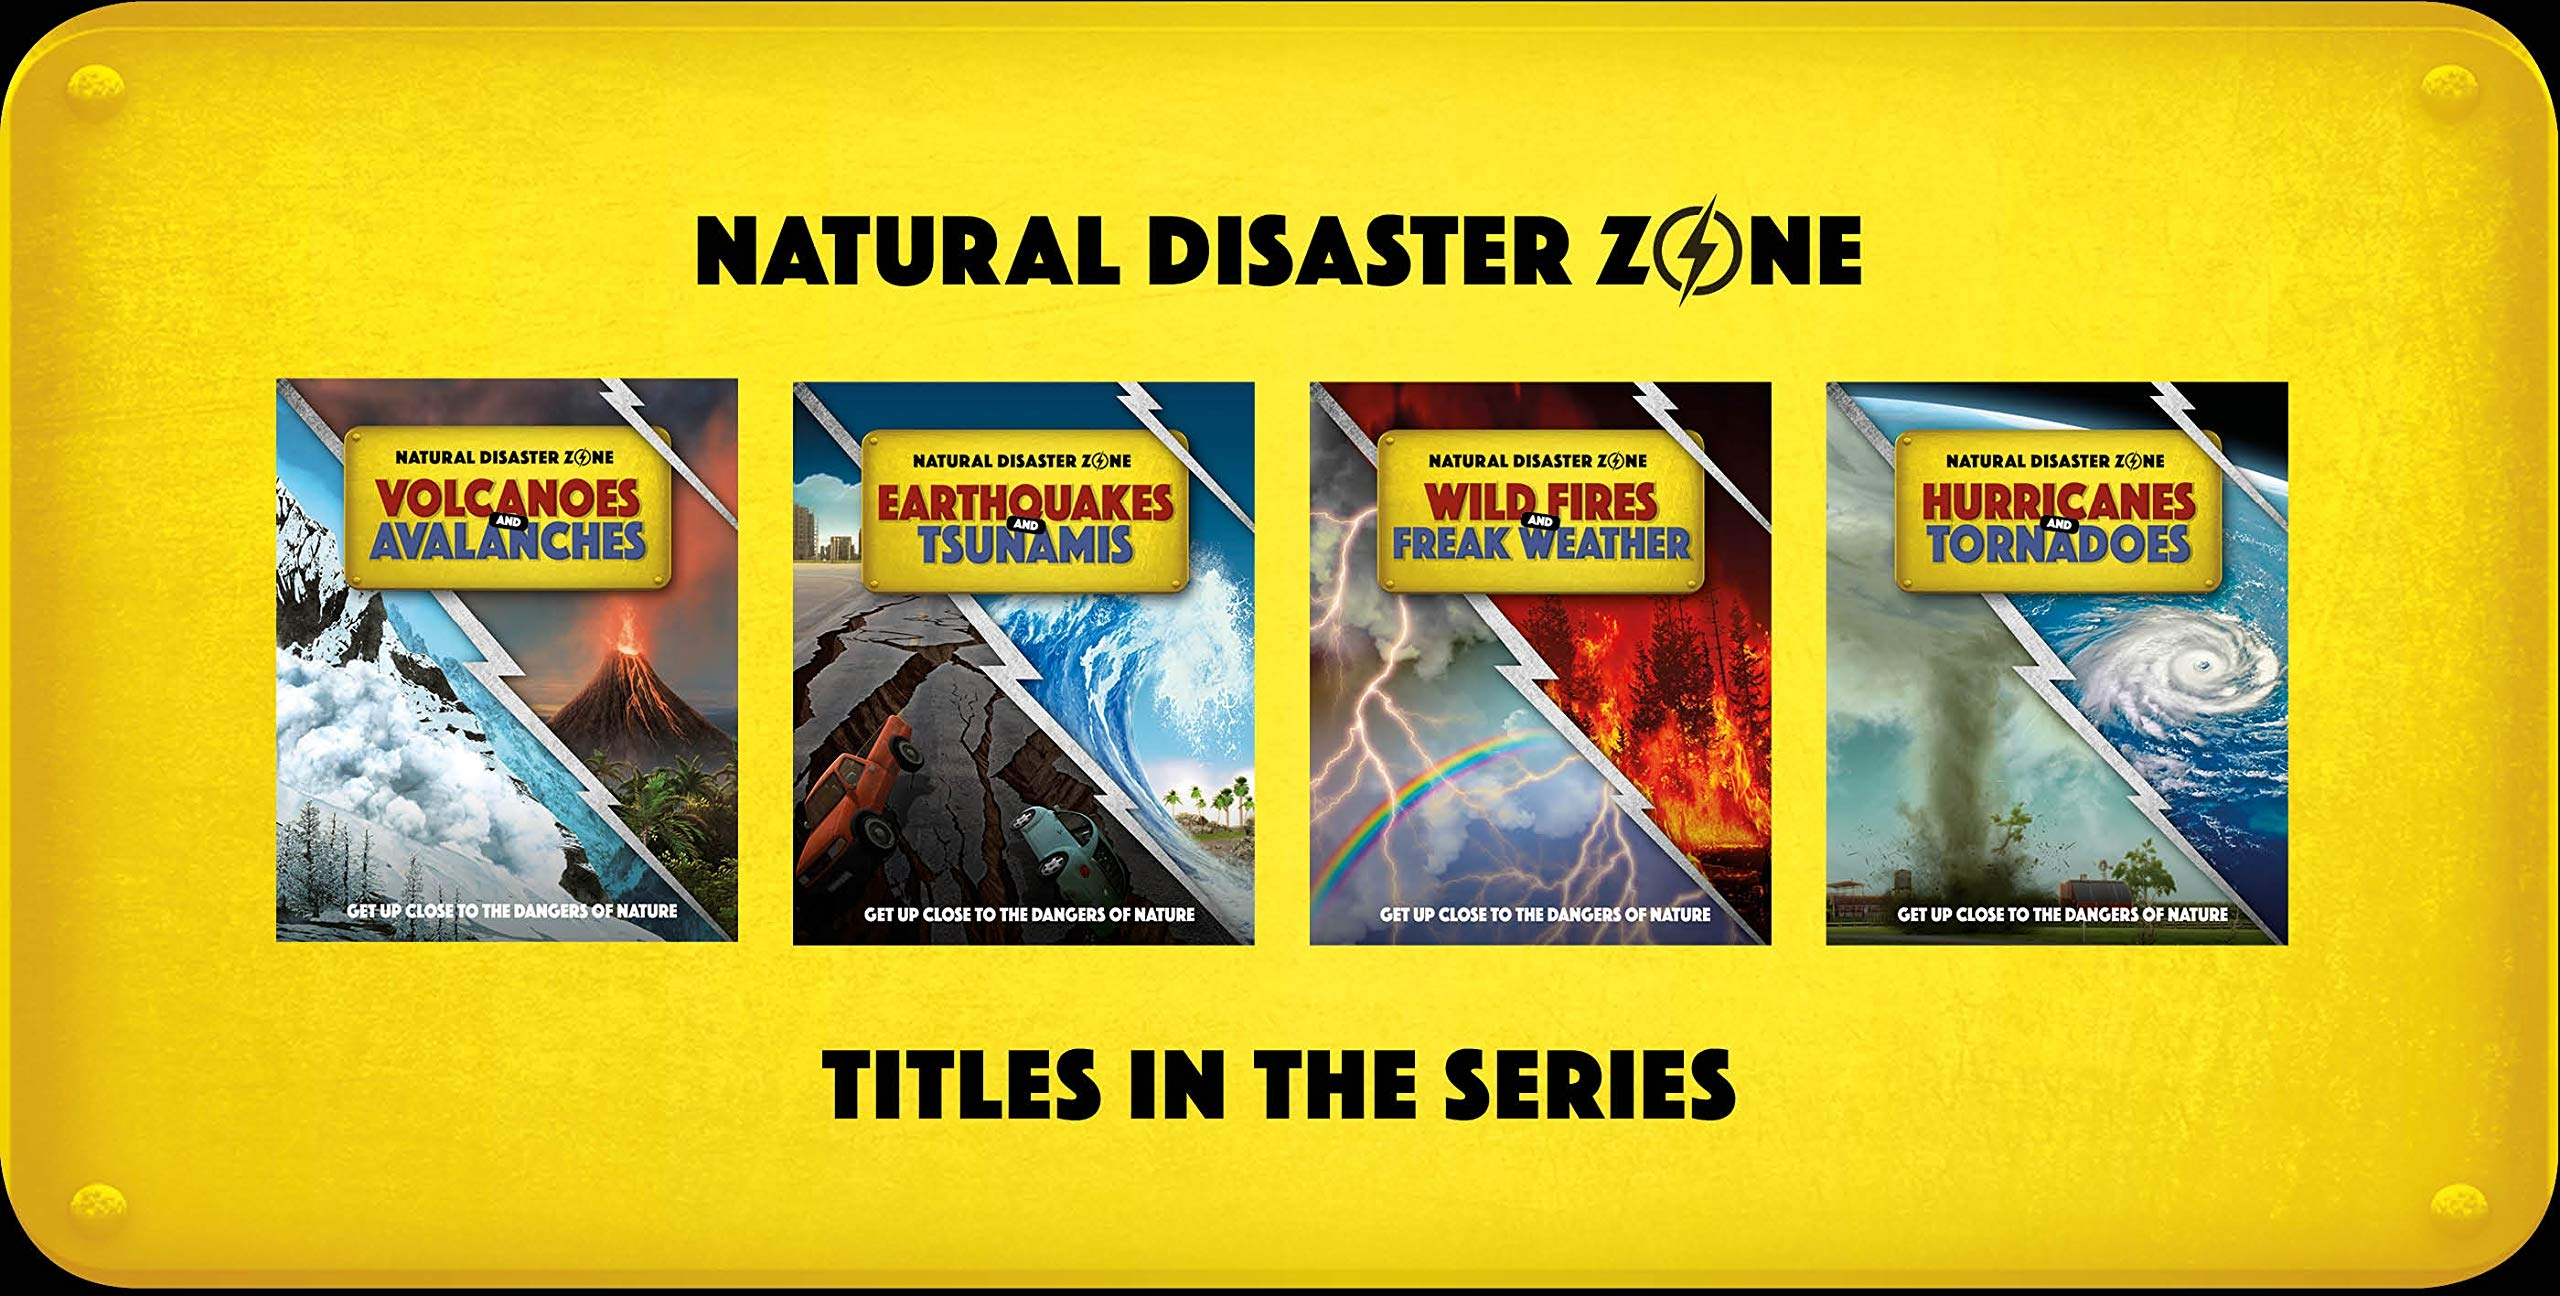 Hurricanes and Tornadoes (Natural Disaster Zone)